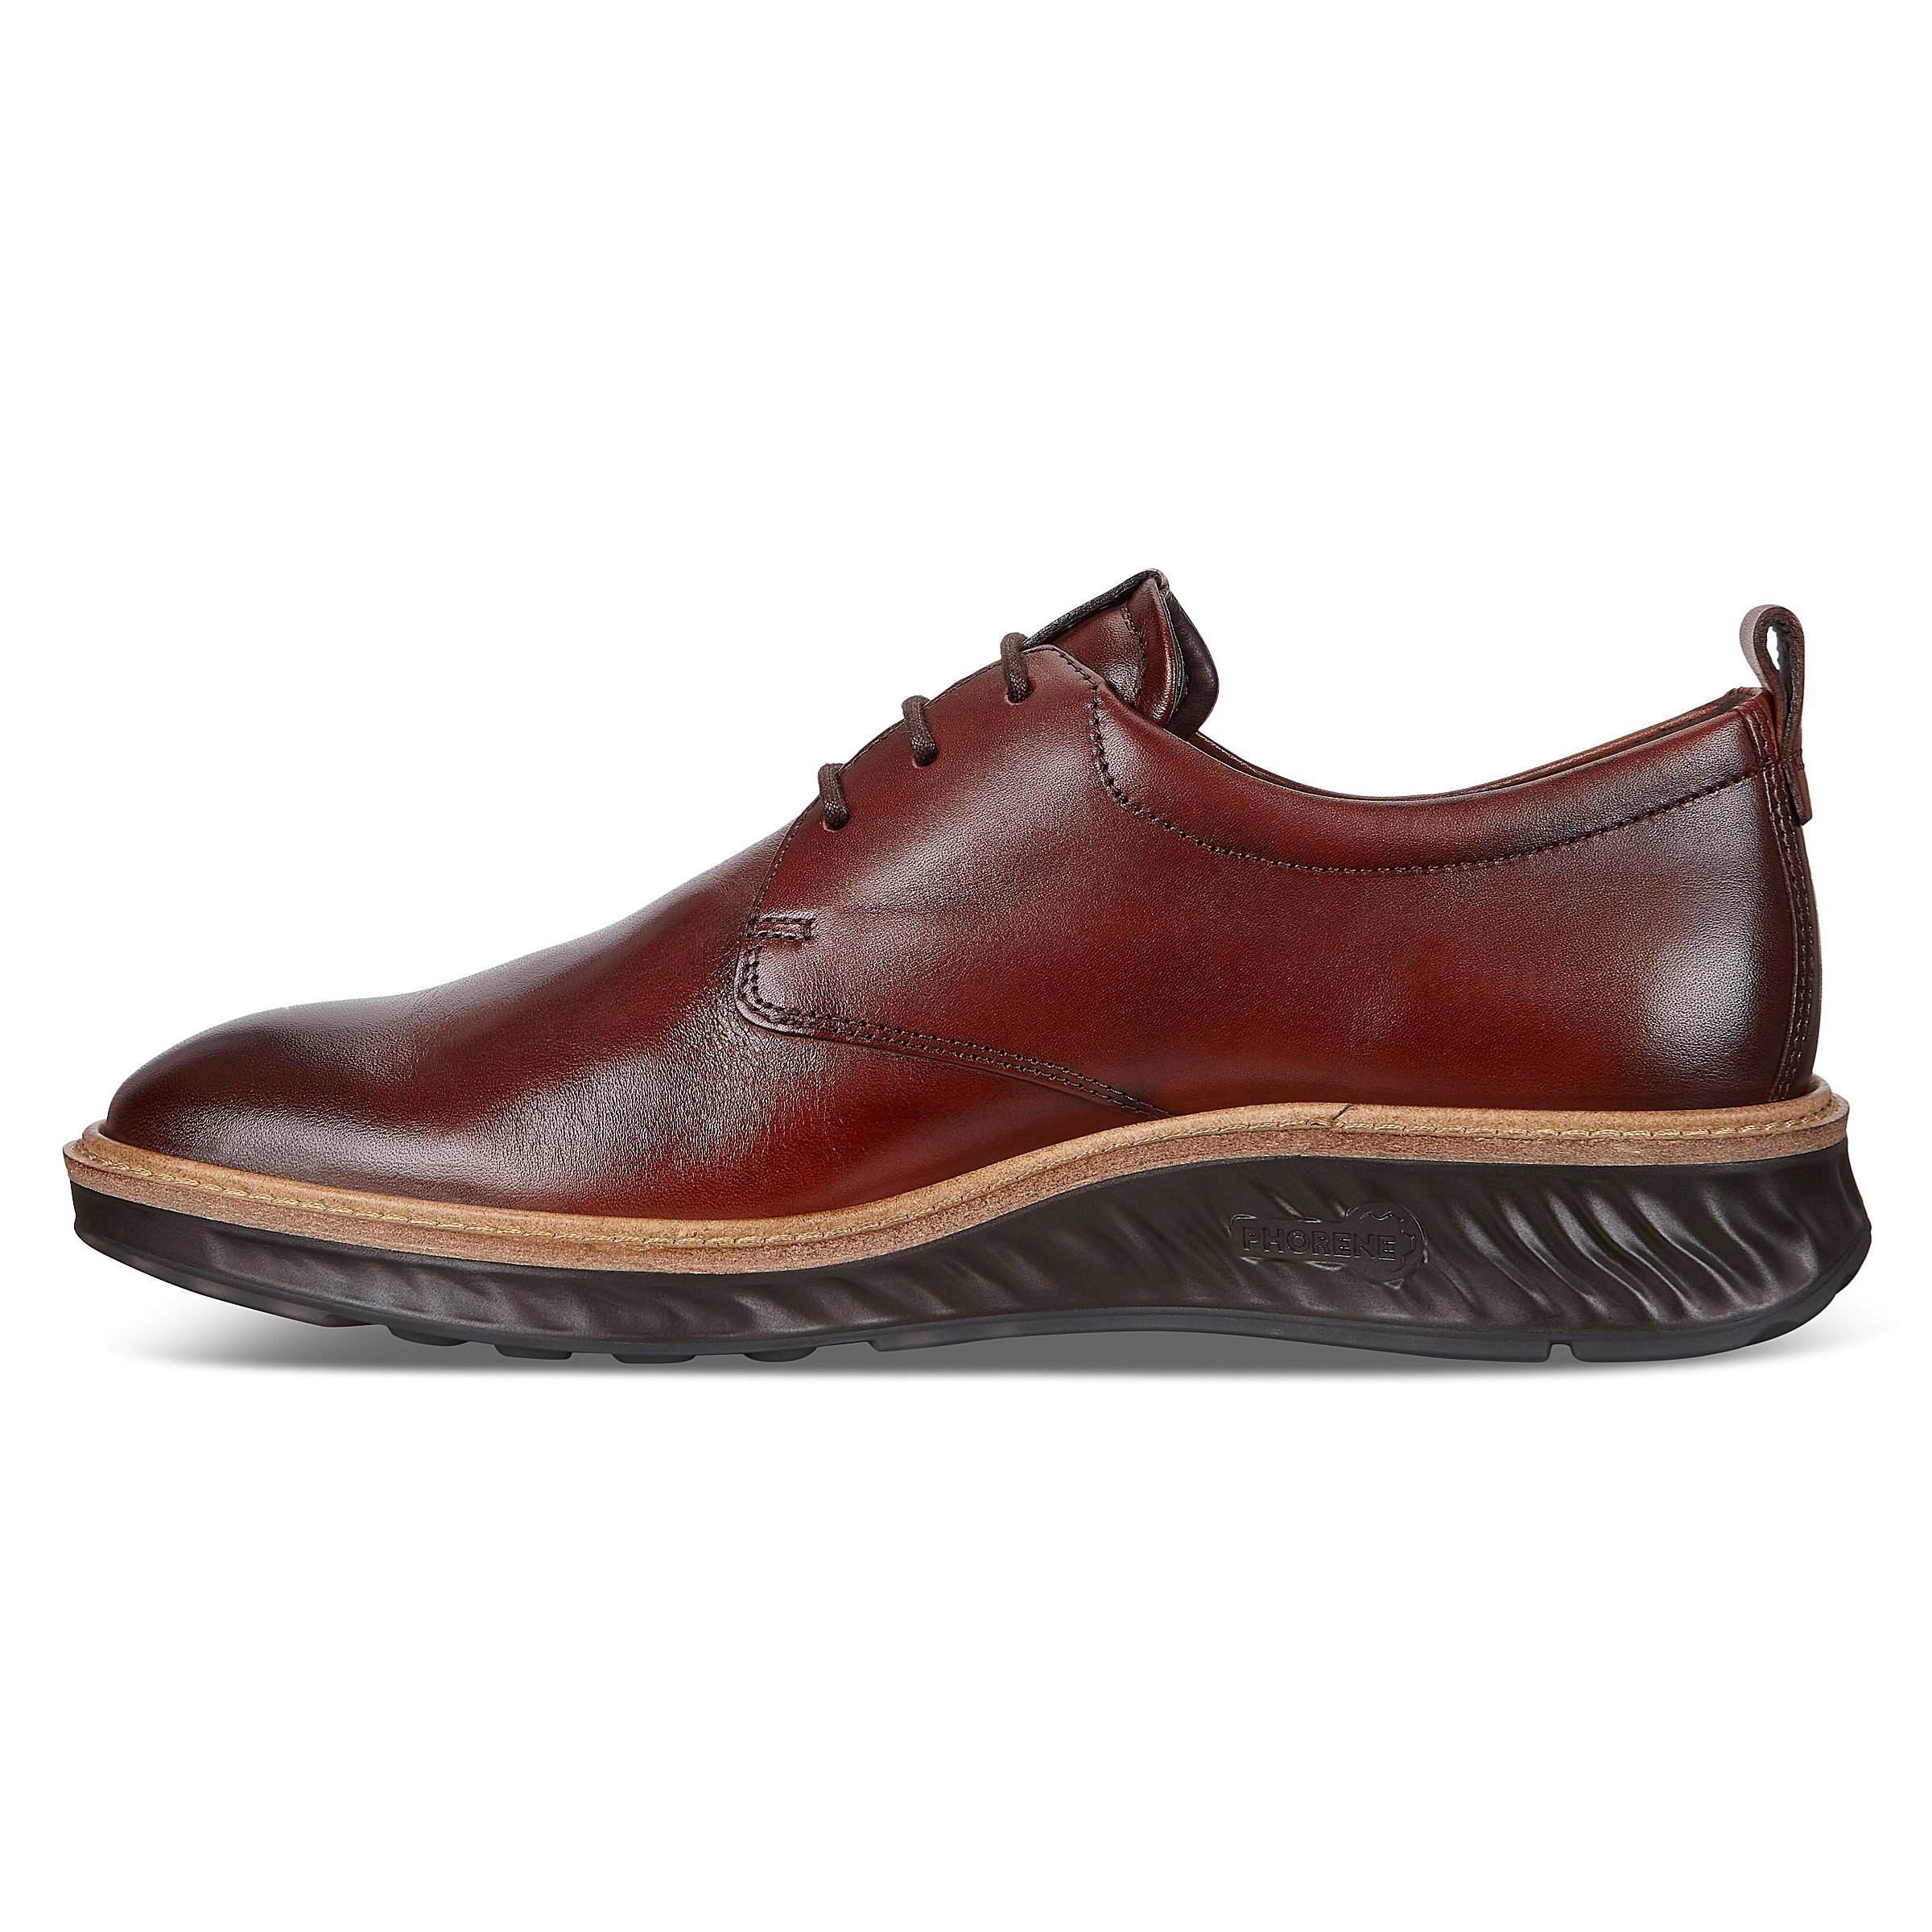 SHOES BUSINESS ECCO ST.1 HYBRID